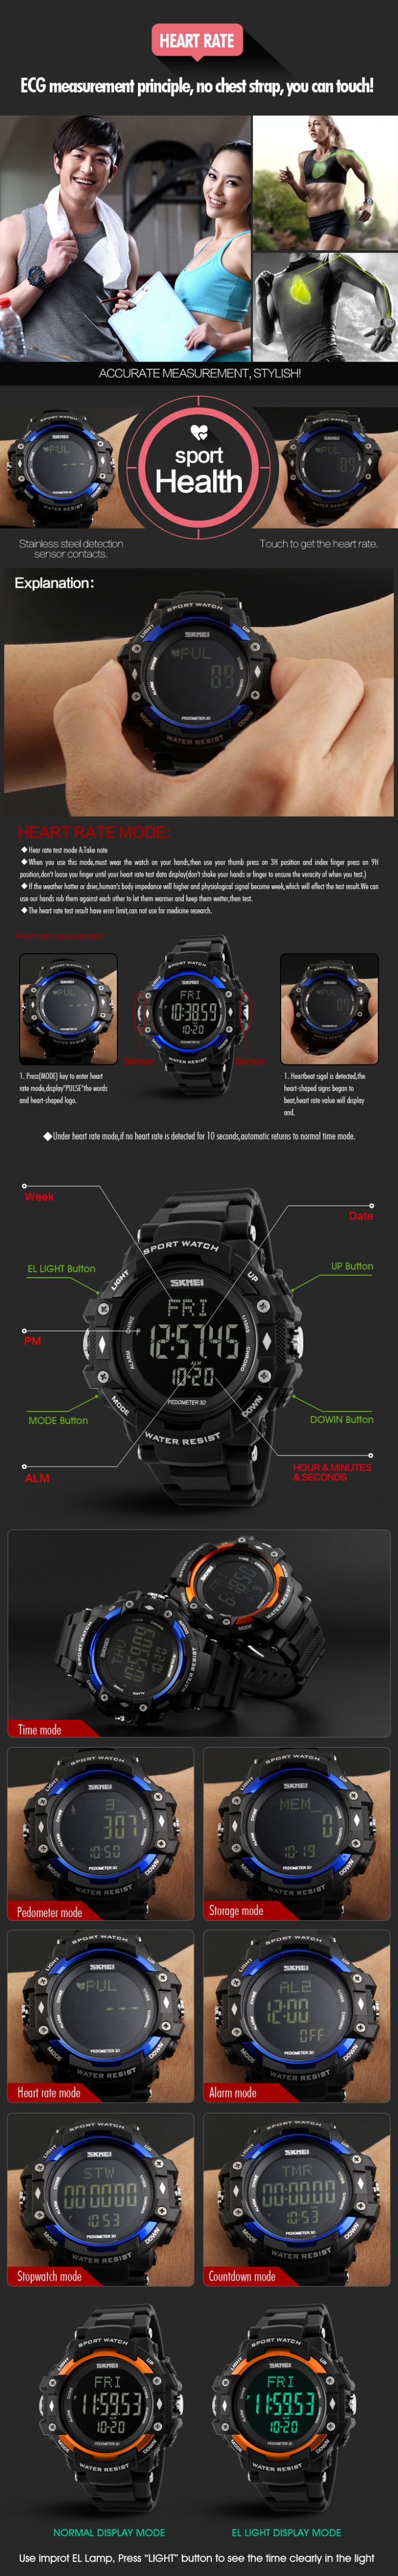 Watches Men's Watches Skmei Men Sports Watches 3d Pedometer Heart Rate Monitor Calories Counter 50m Waterproof Digital Led Mens Wristwatches